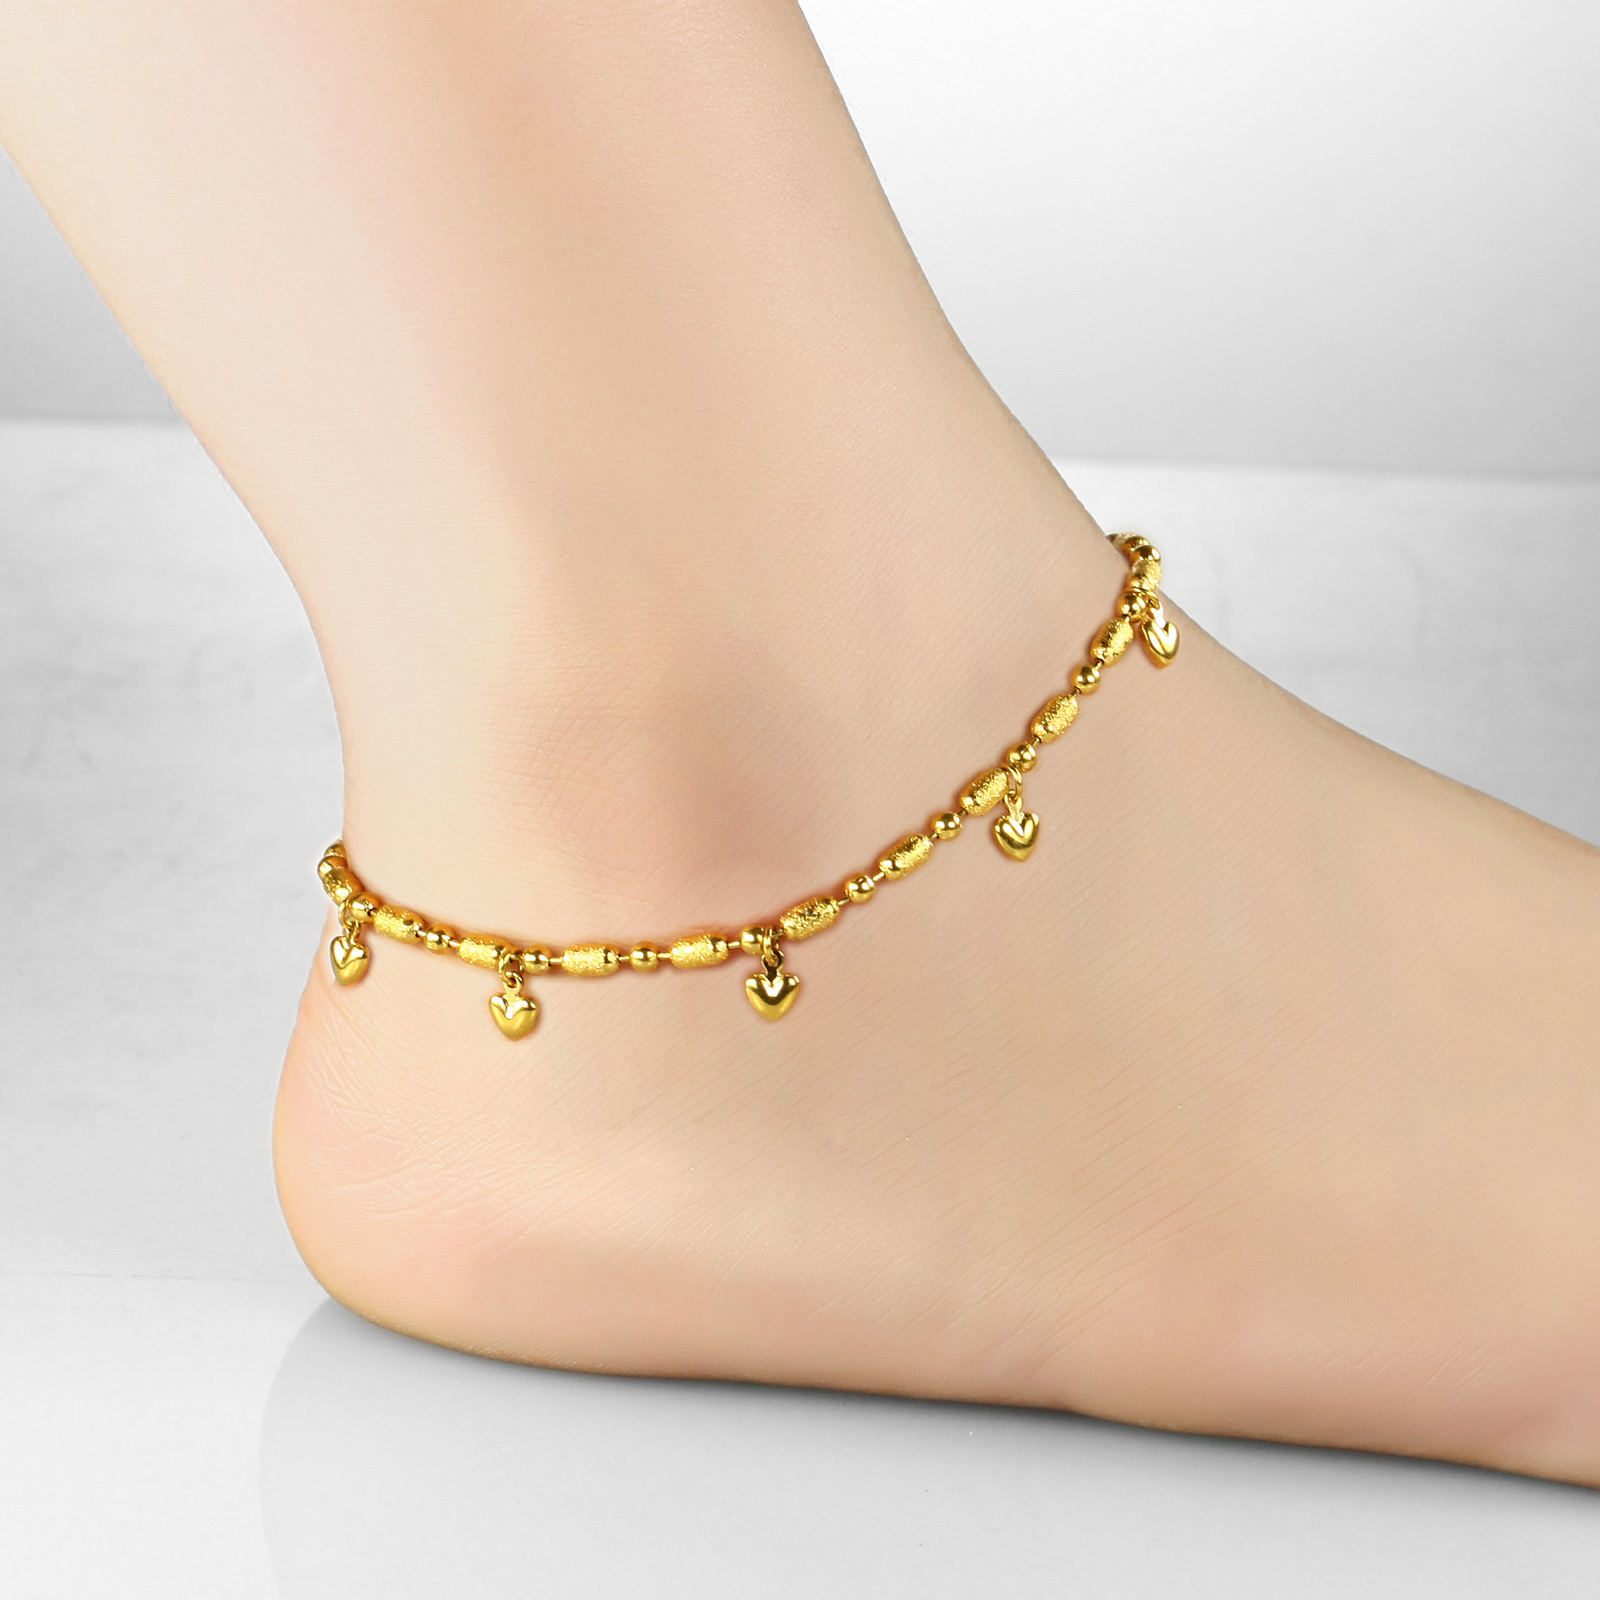 18K gold jewelry hammered copper bead chain anklet